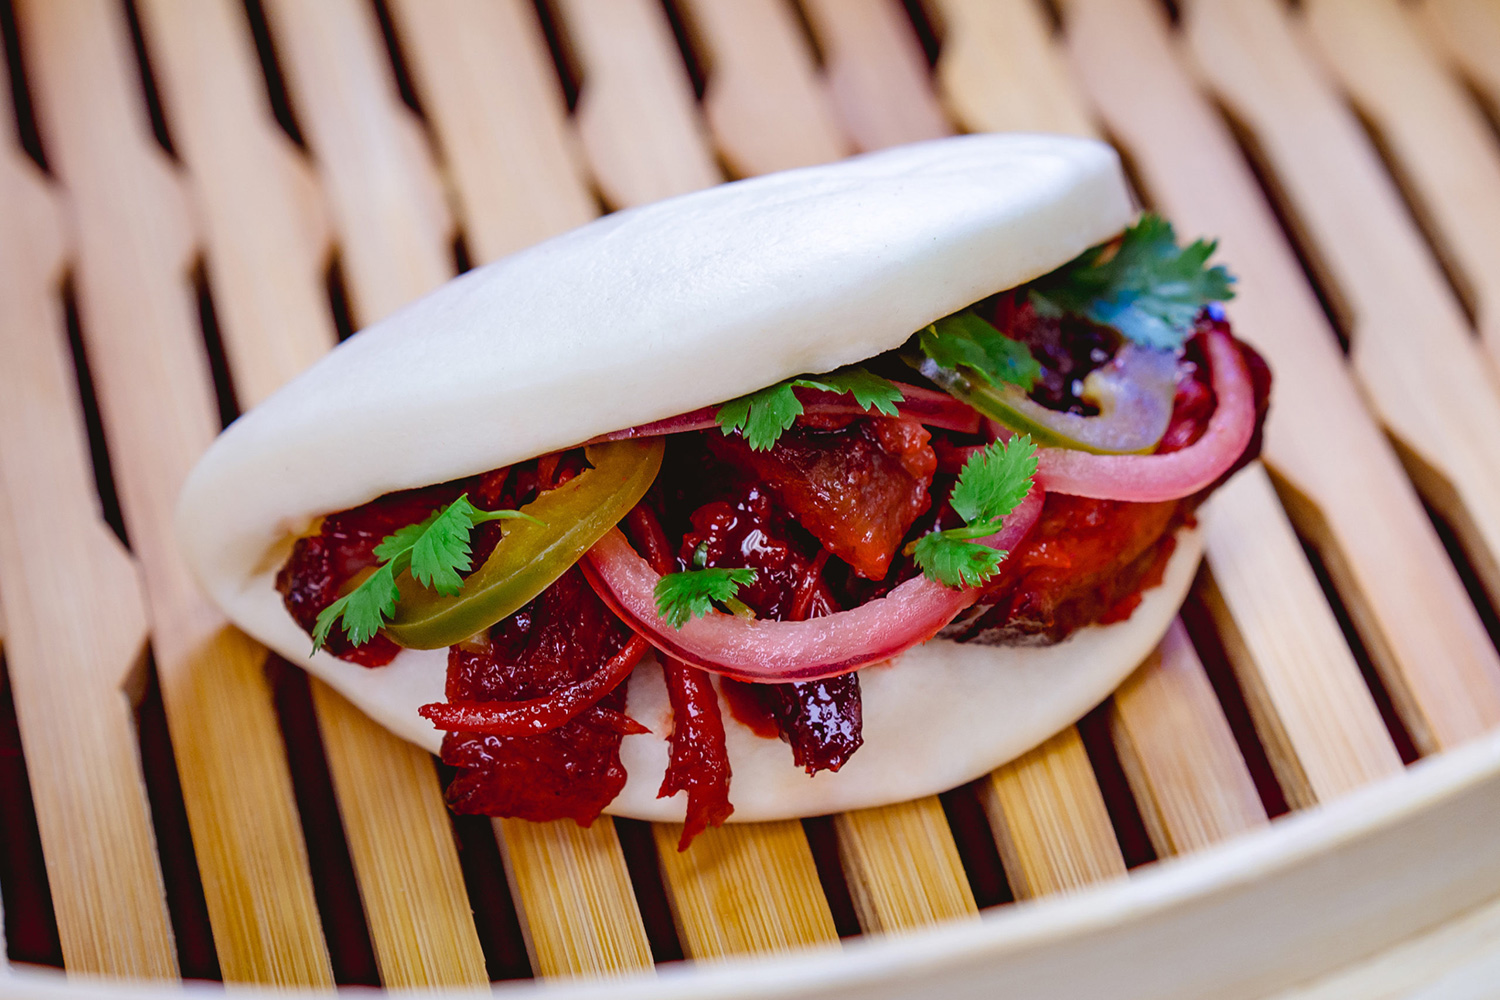 This char siu pork bao with barbecued pork, pickled red onions and jalapeño can be found at Disney California Adventure Park as Disneyland Resort celebrates the Year of the Mouse this Lunar New Year, Jan. 17 through Feb. 9, 2020